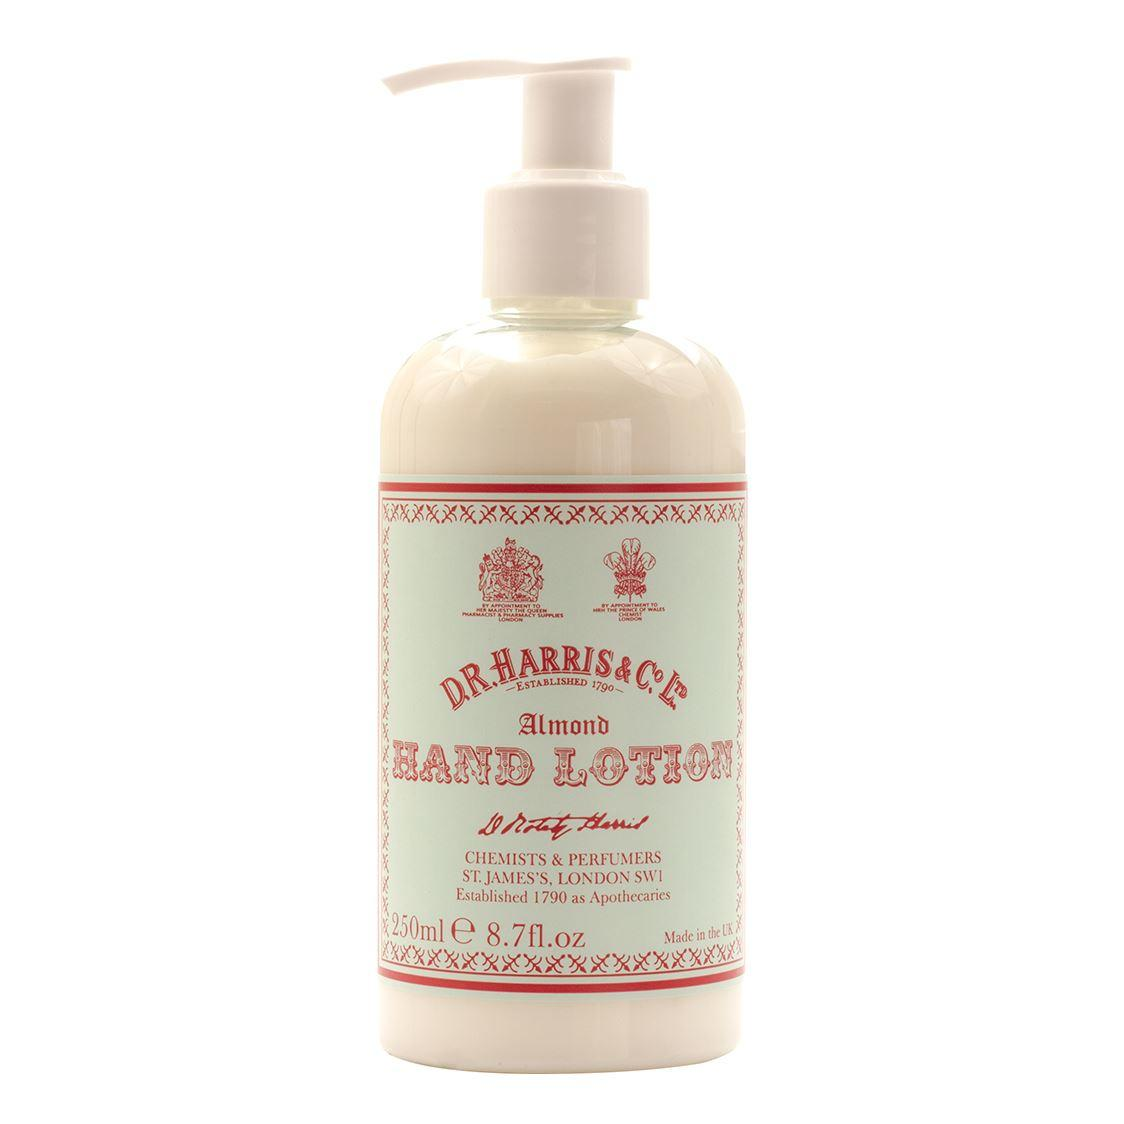 DR Harris & Co Almond Oil Moisturising Hand Lotion